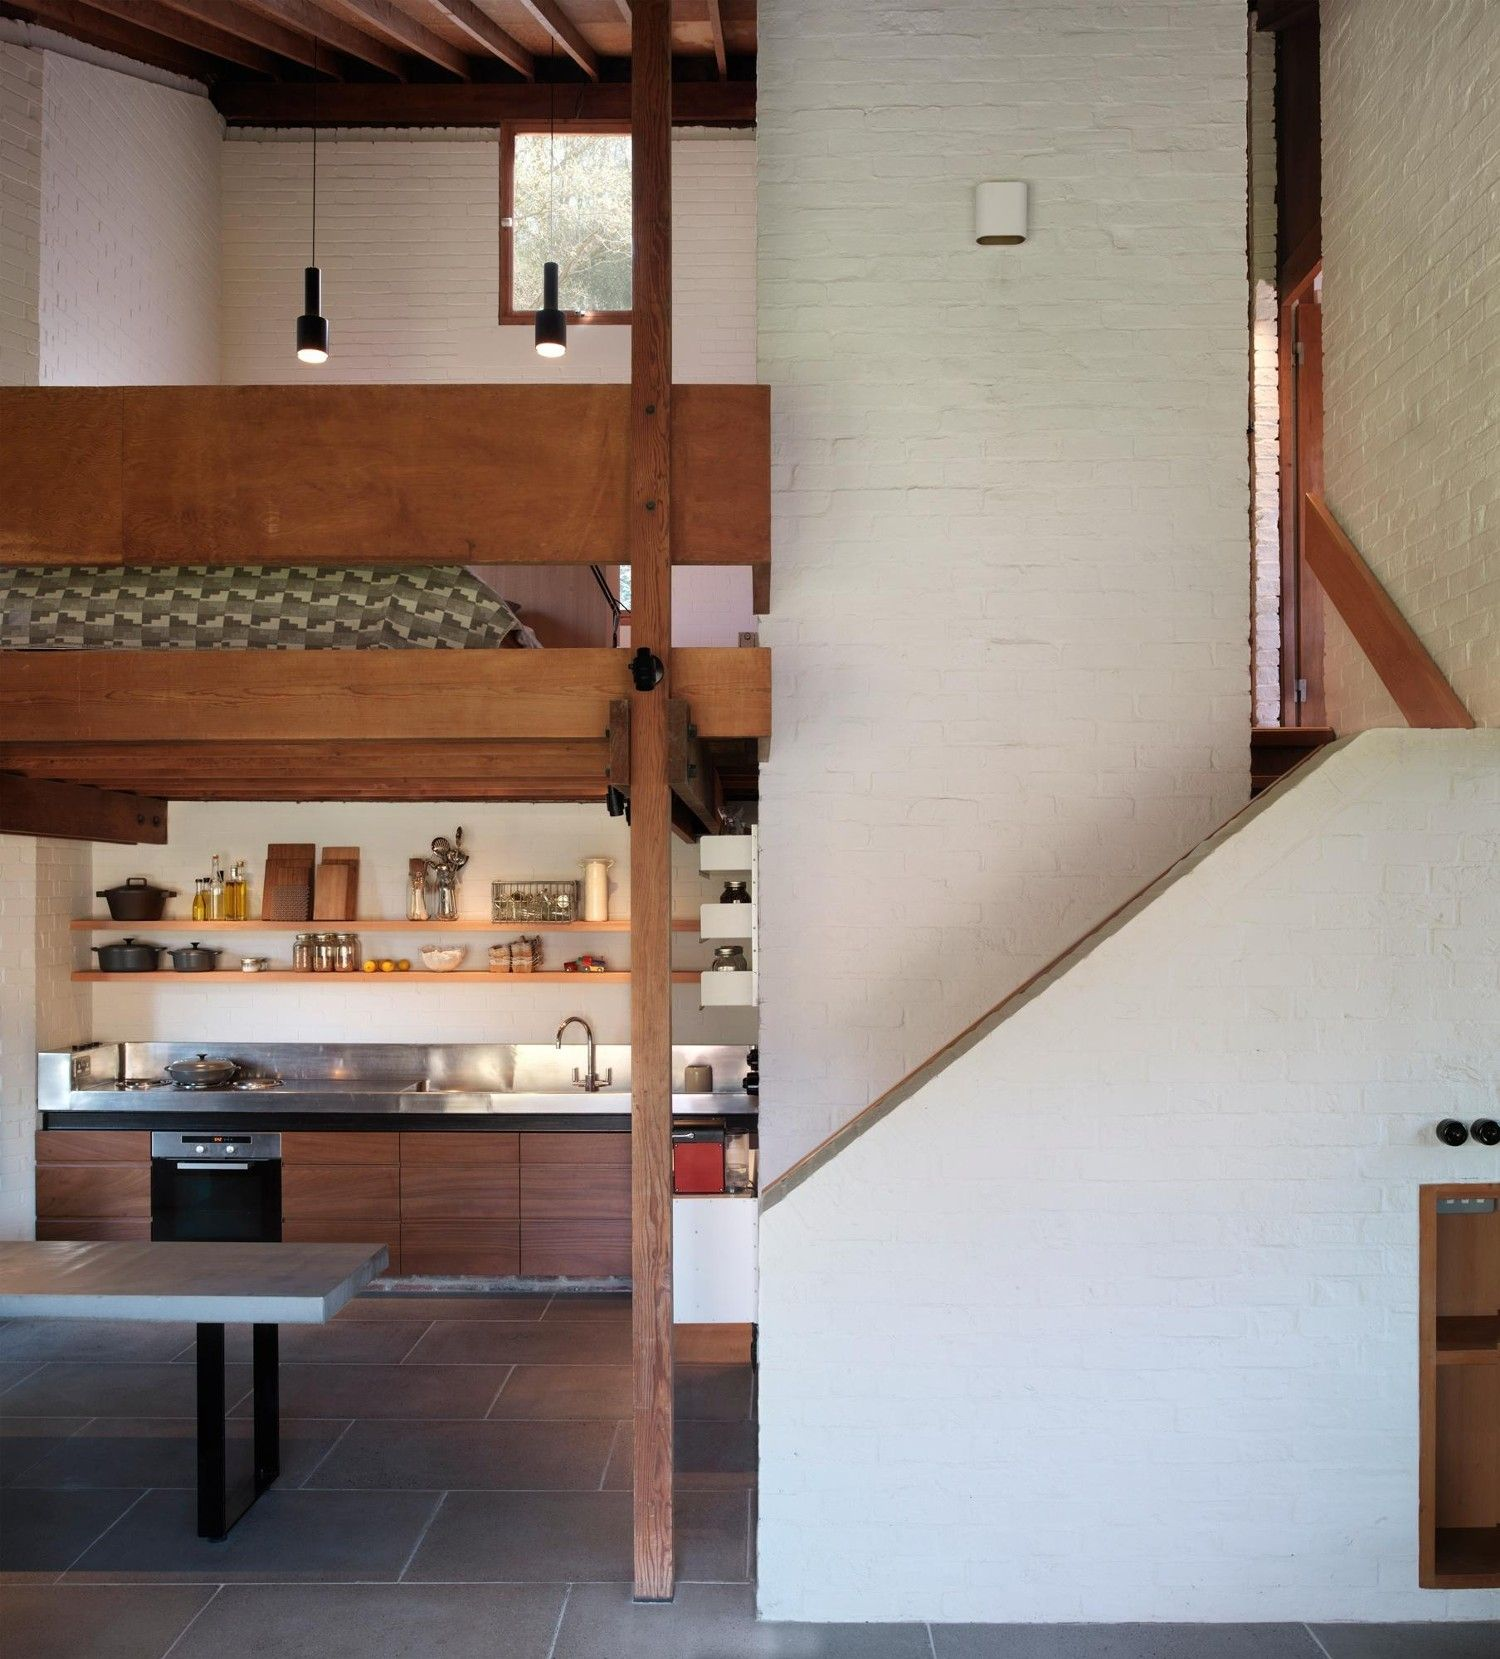 Ansty Plum - Coppin Dockray Architects